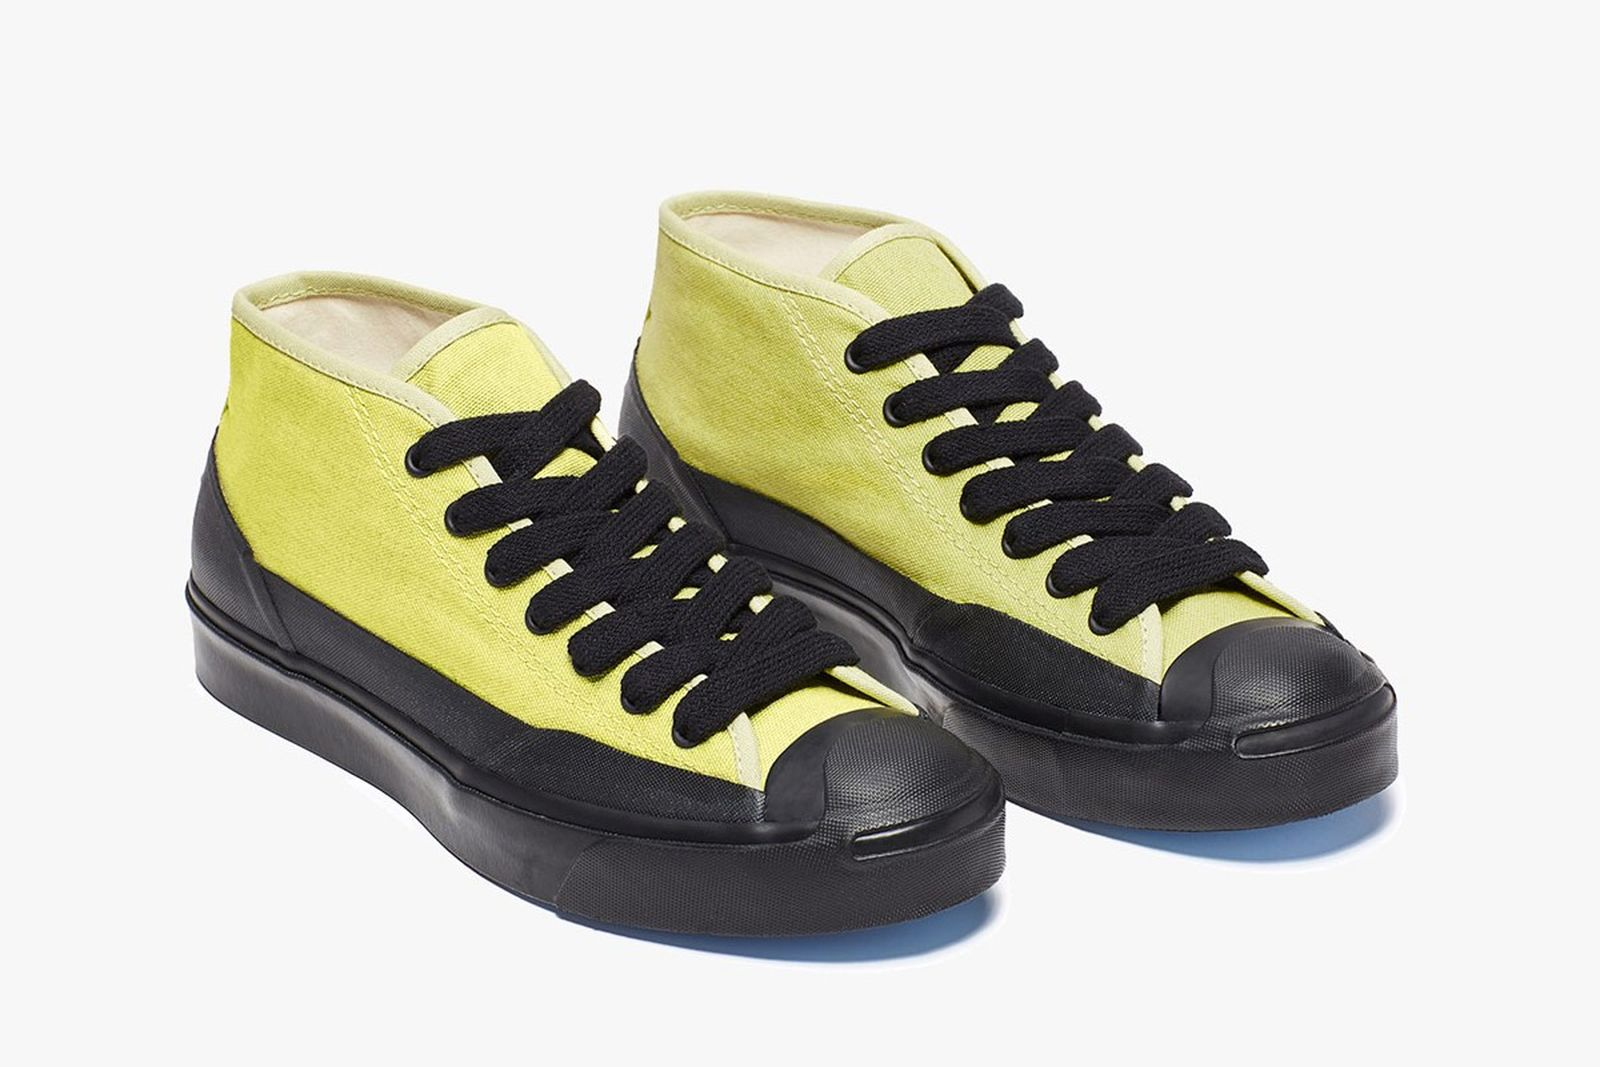 asap nast converse jack purcell chukka mid release date price A$AP Nast